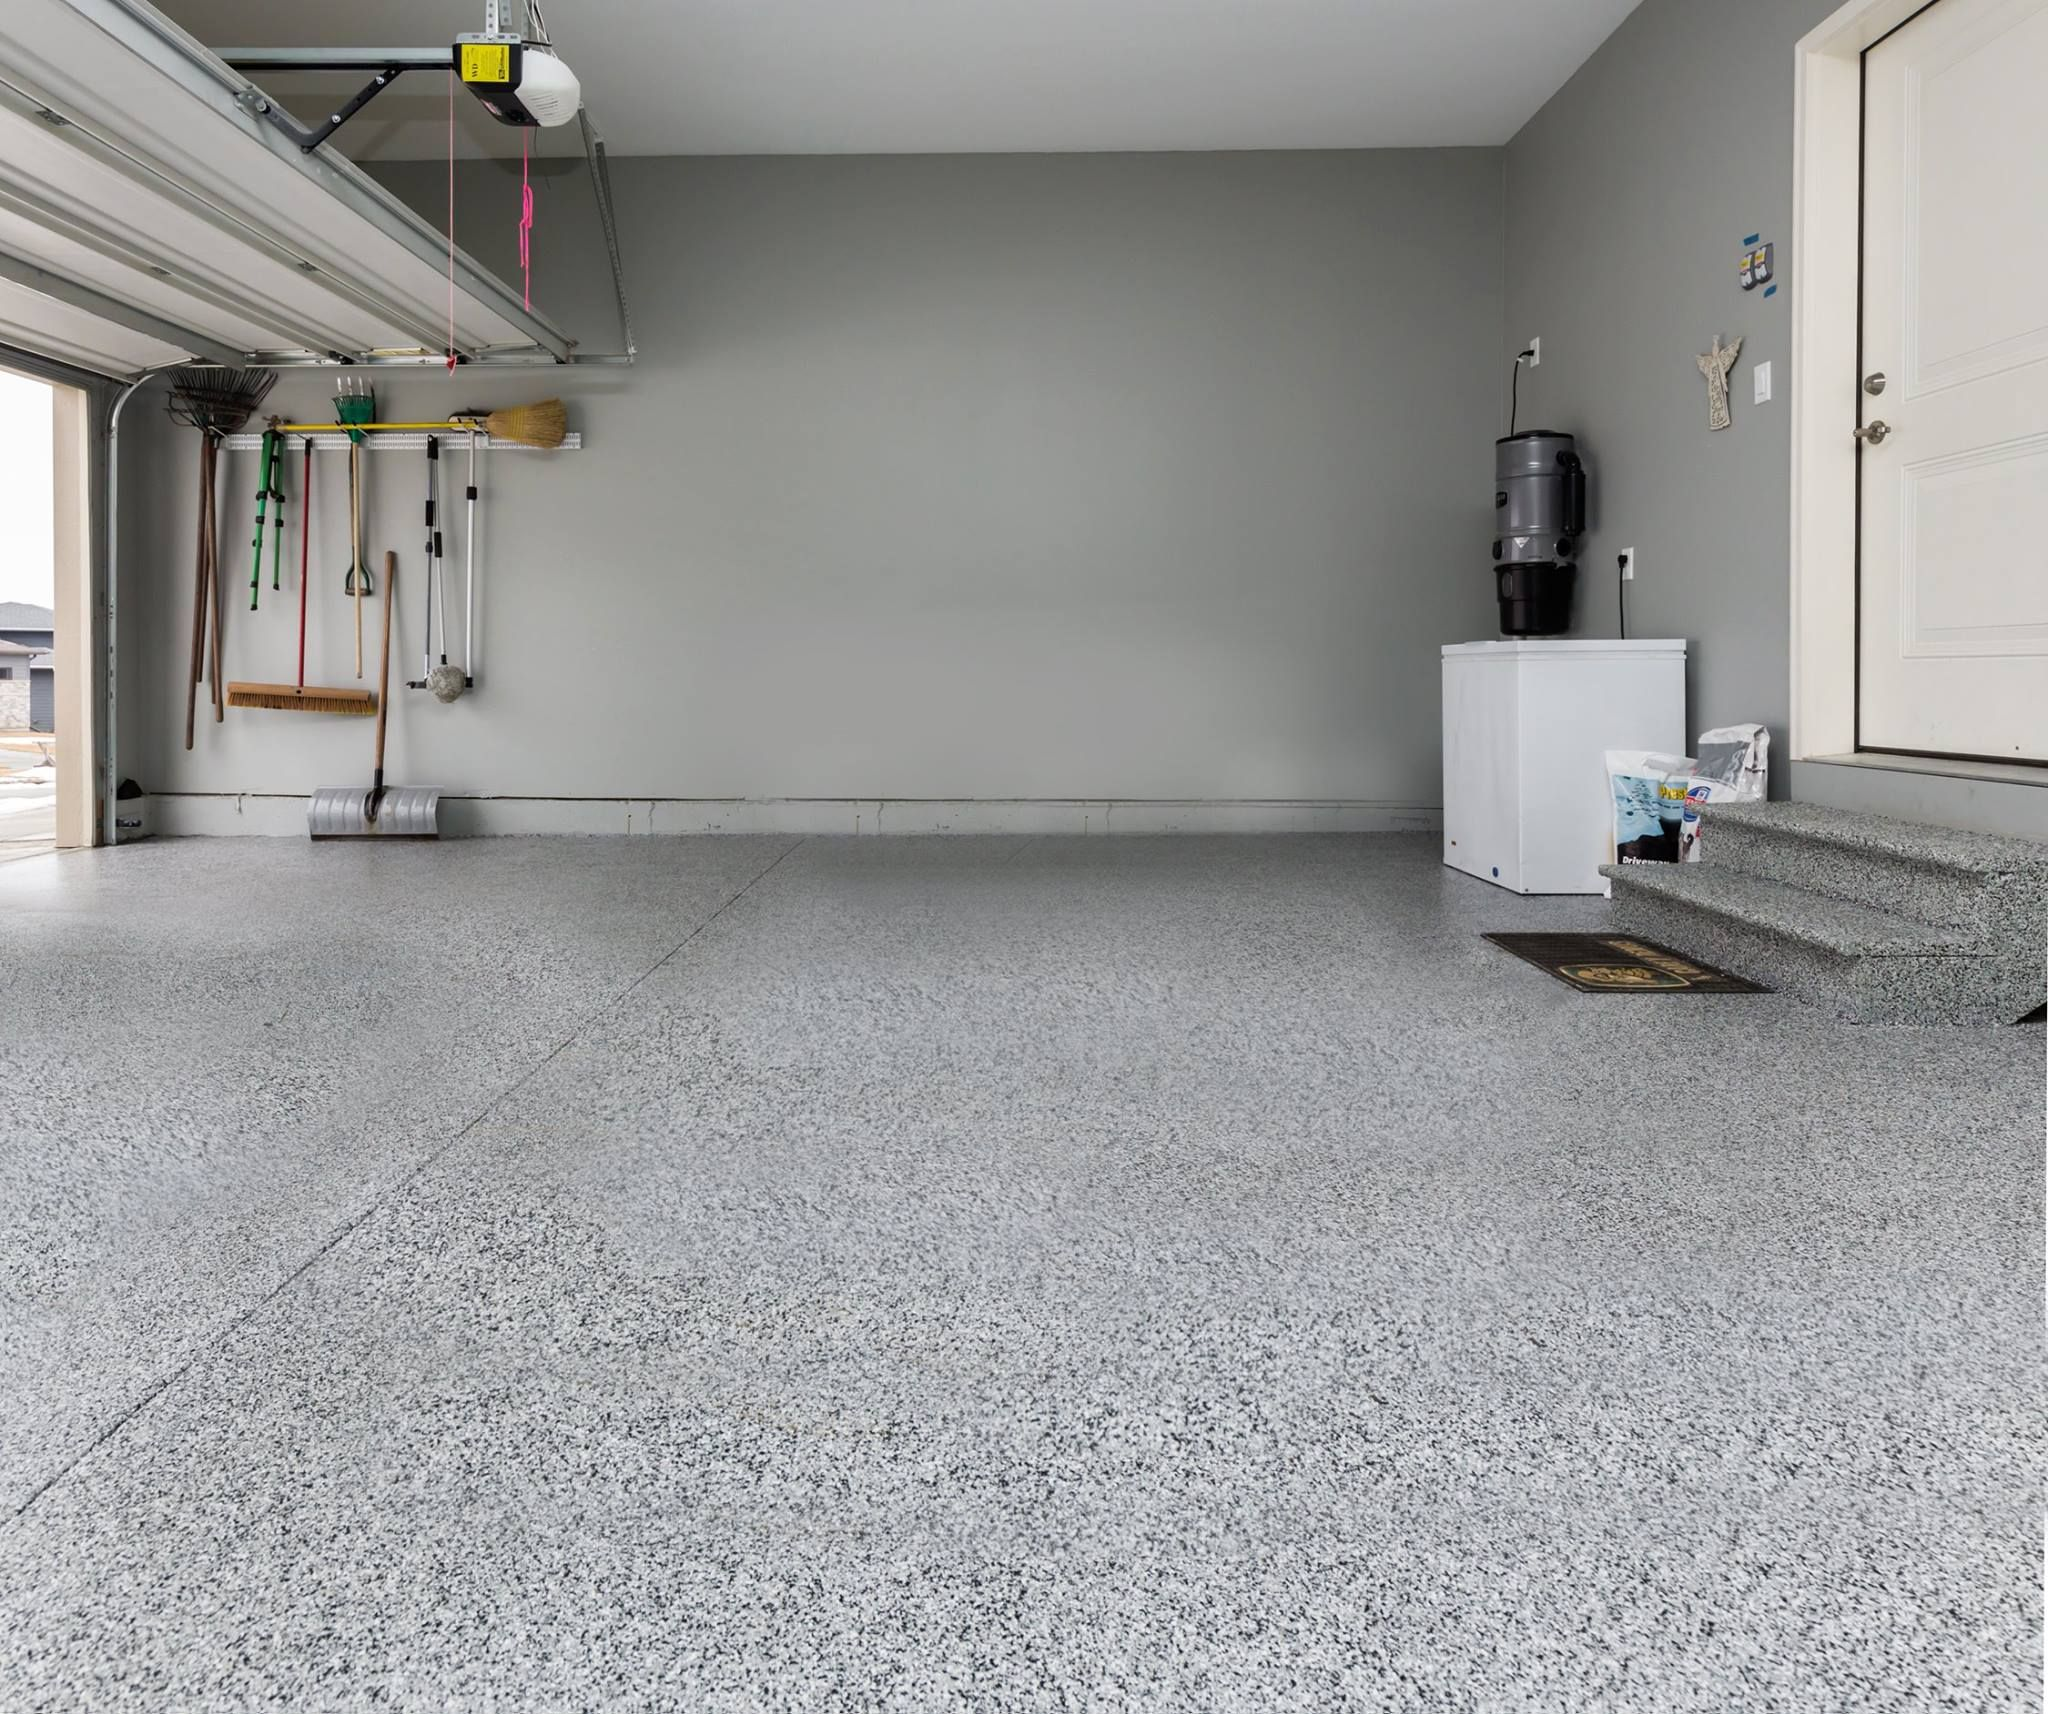 Epoxy Flake Flooring Contractor Council Bluffs IA (With